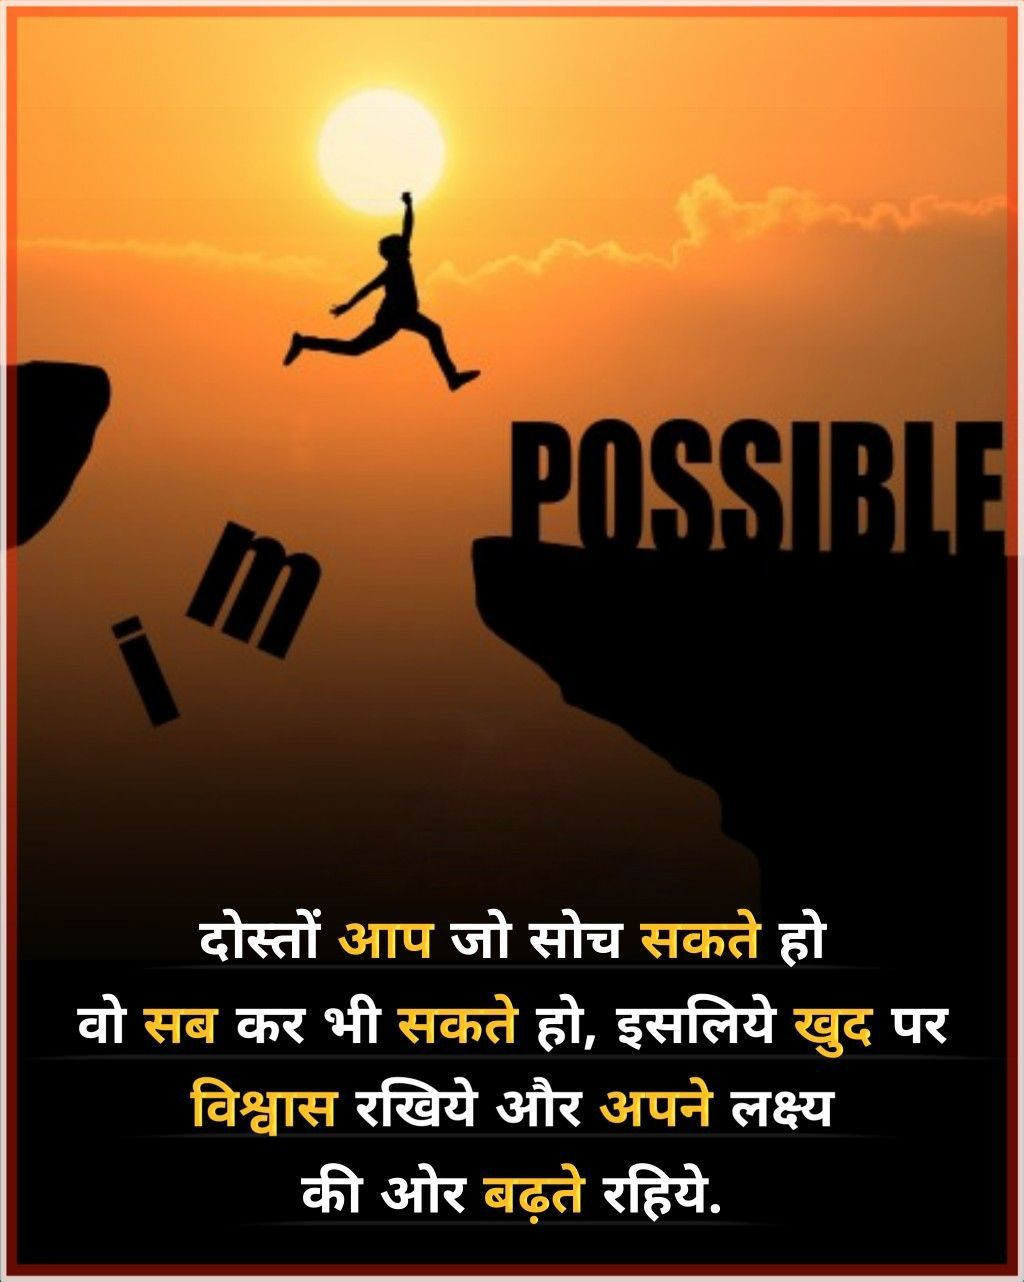 motivational status images in hindi free download in 2020